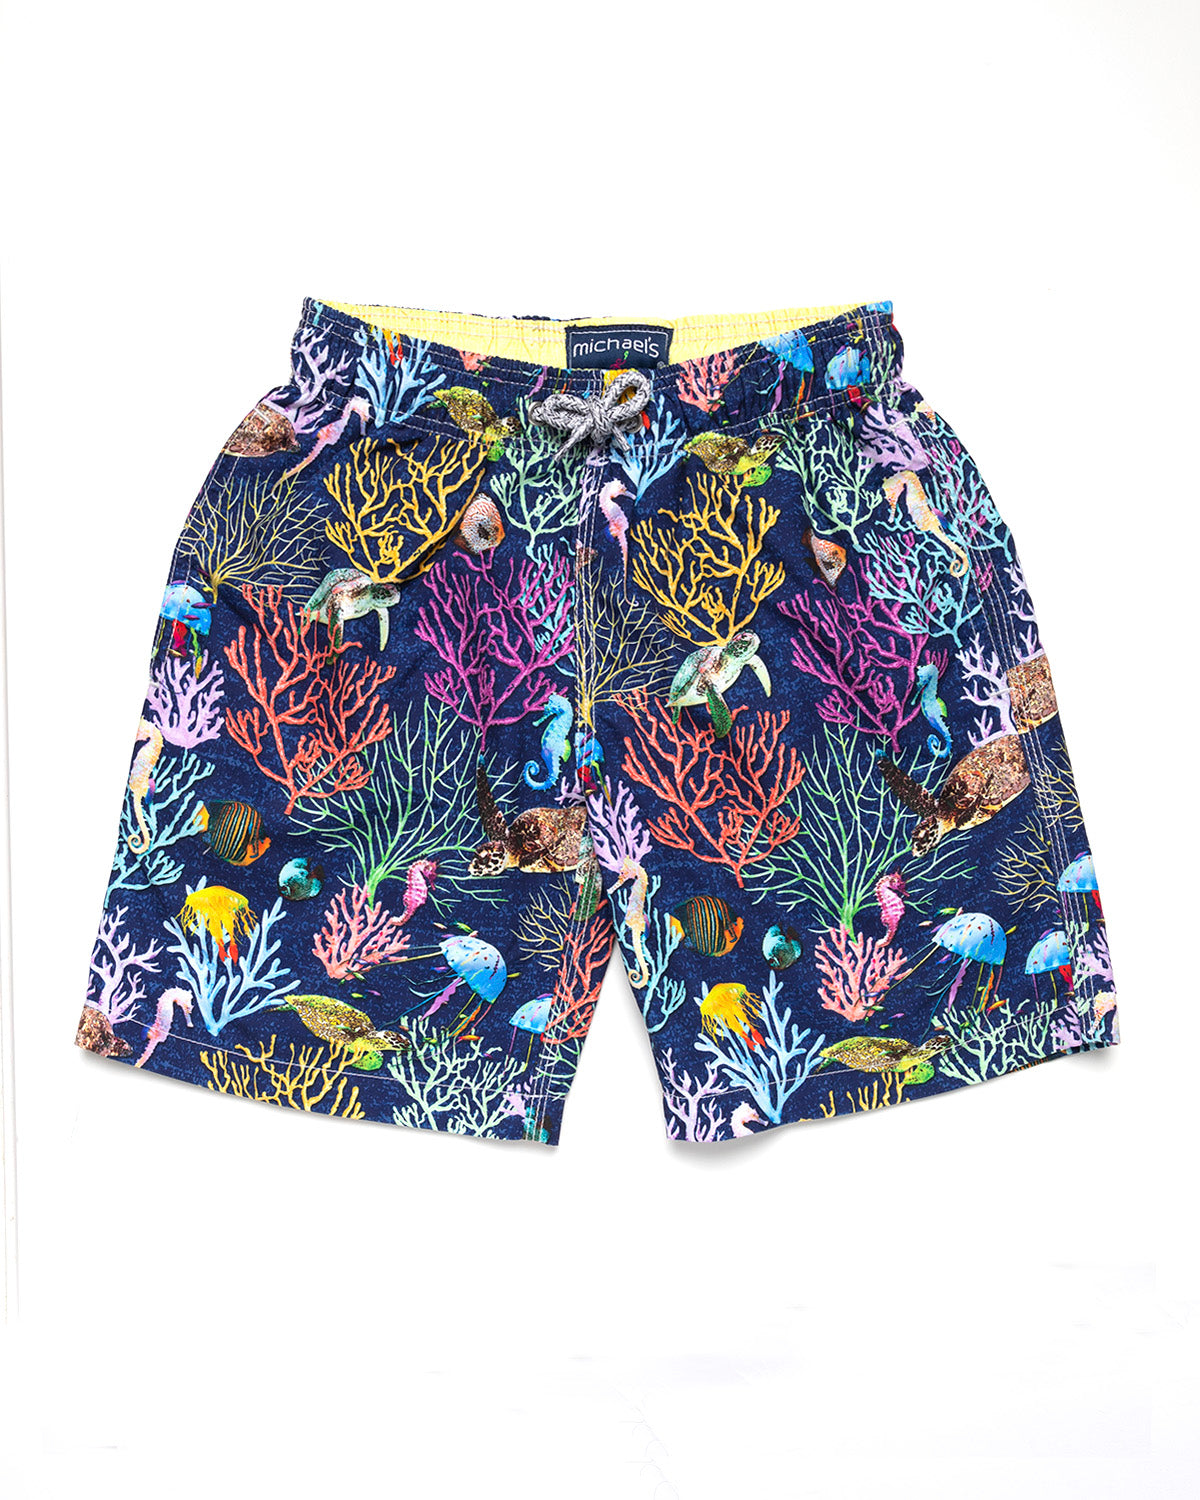 2622590b95 Men's Coral & Turtles Print Swim Trunk With Cyclist Liner- Navy